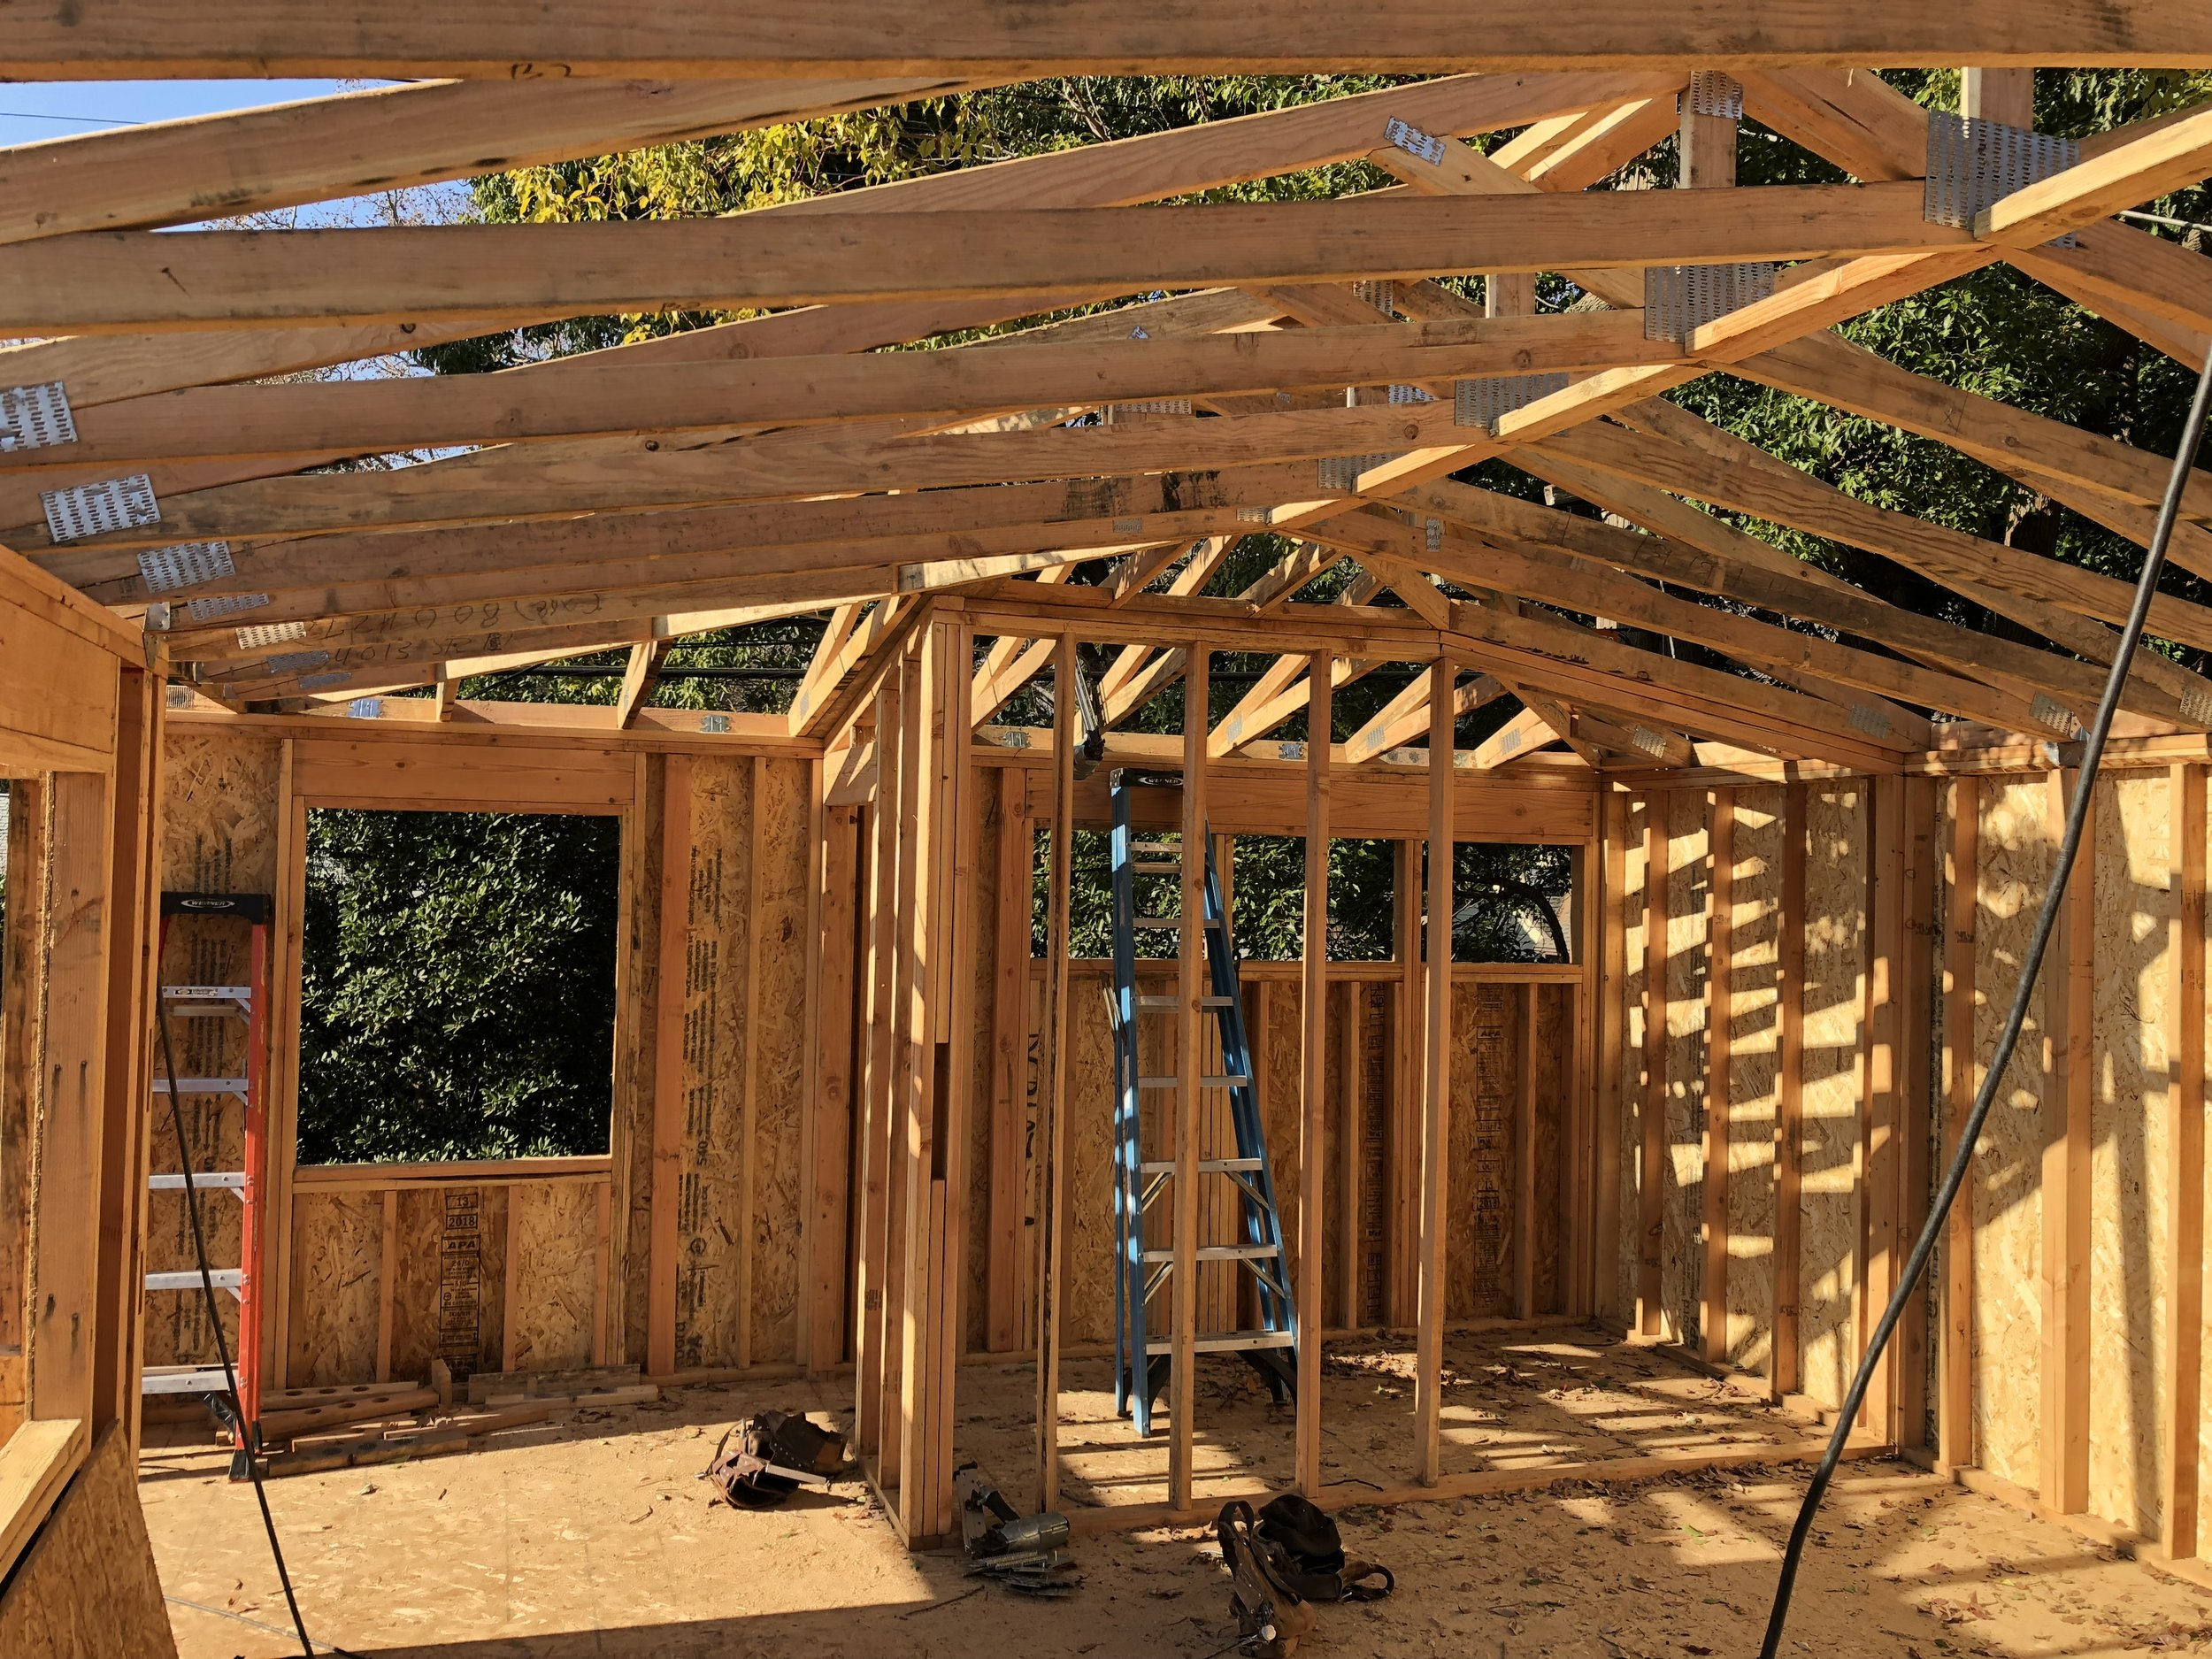 2-story-glass-block-studio-construction-framing-trusses-windows.jpeg